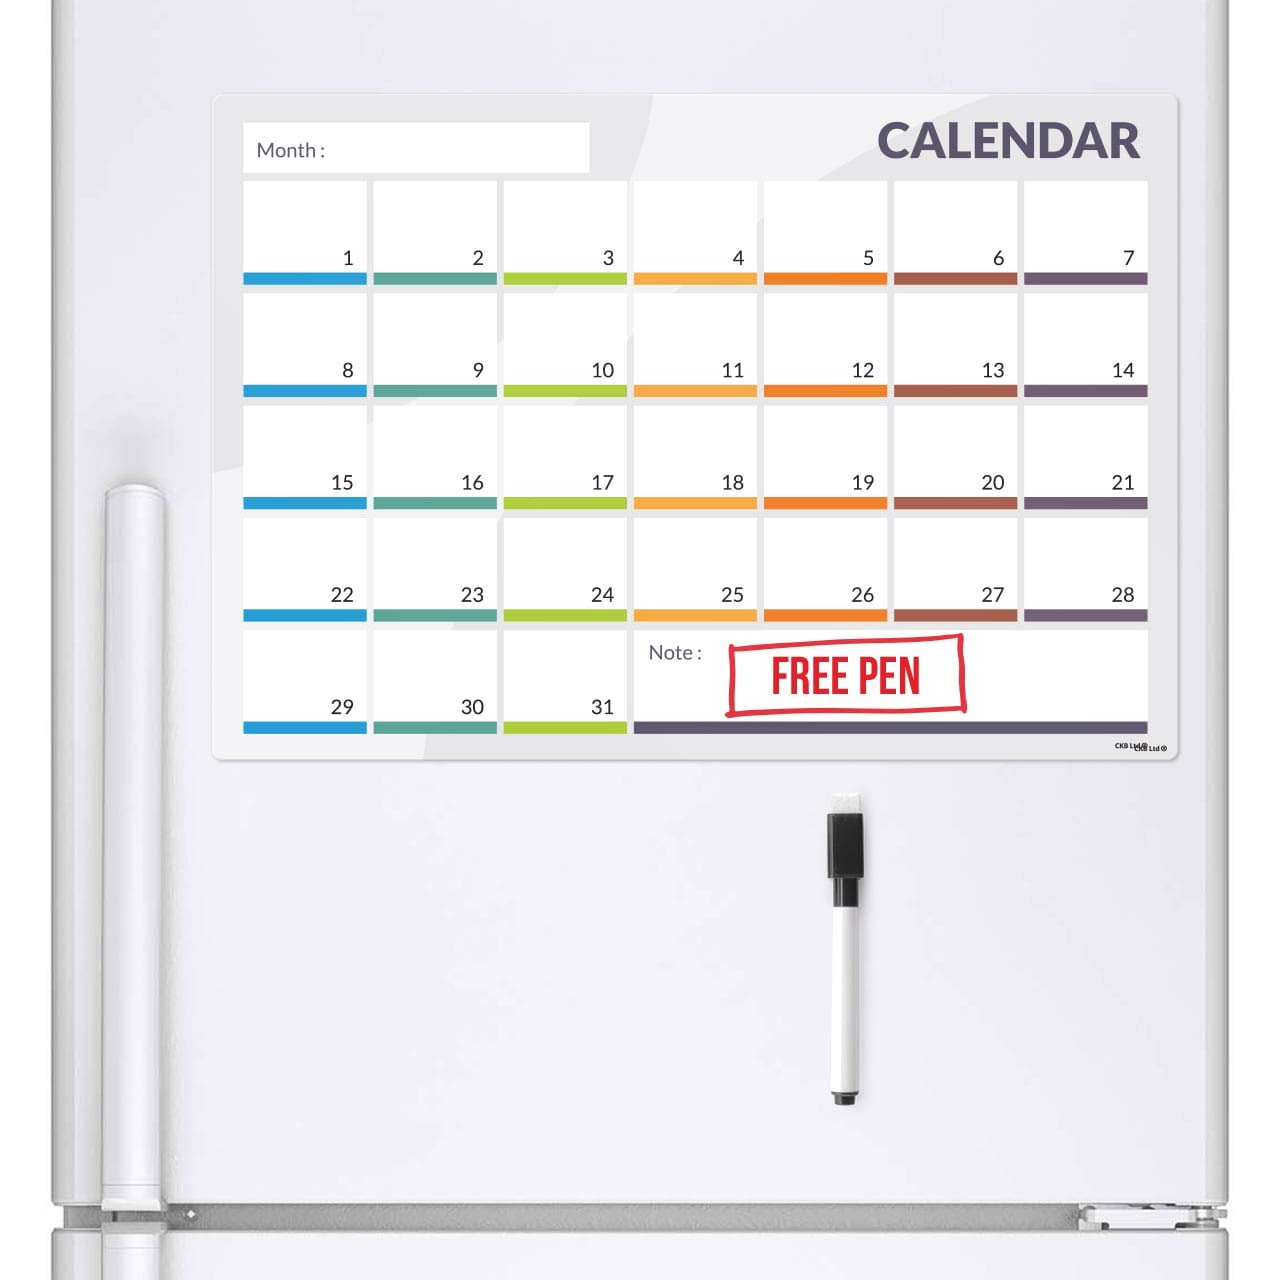 CKB Ltd Calendar 31 Day Refrigerator Monthly Planner Magnetic Fridge Board with Marker White Board & Pen - Drywipe Magnet Whiteboard Kitchen Office Memo Notice Menu Large Daily Grocery & to Do List